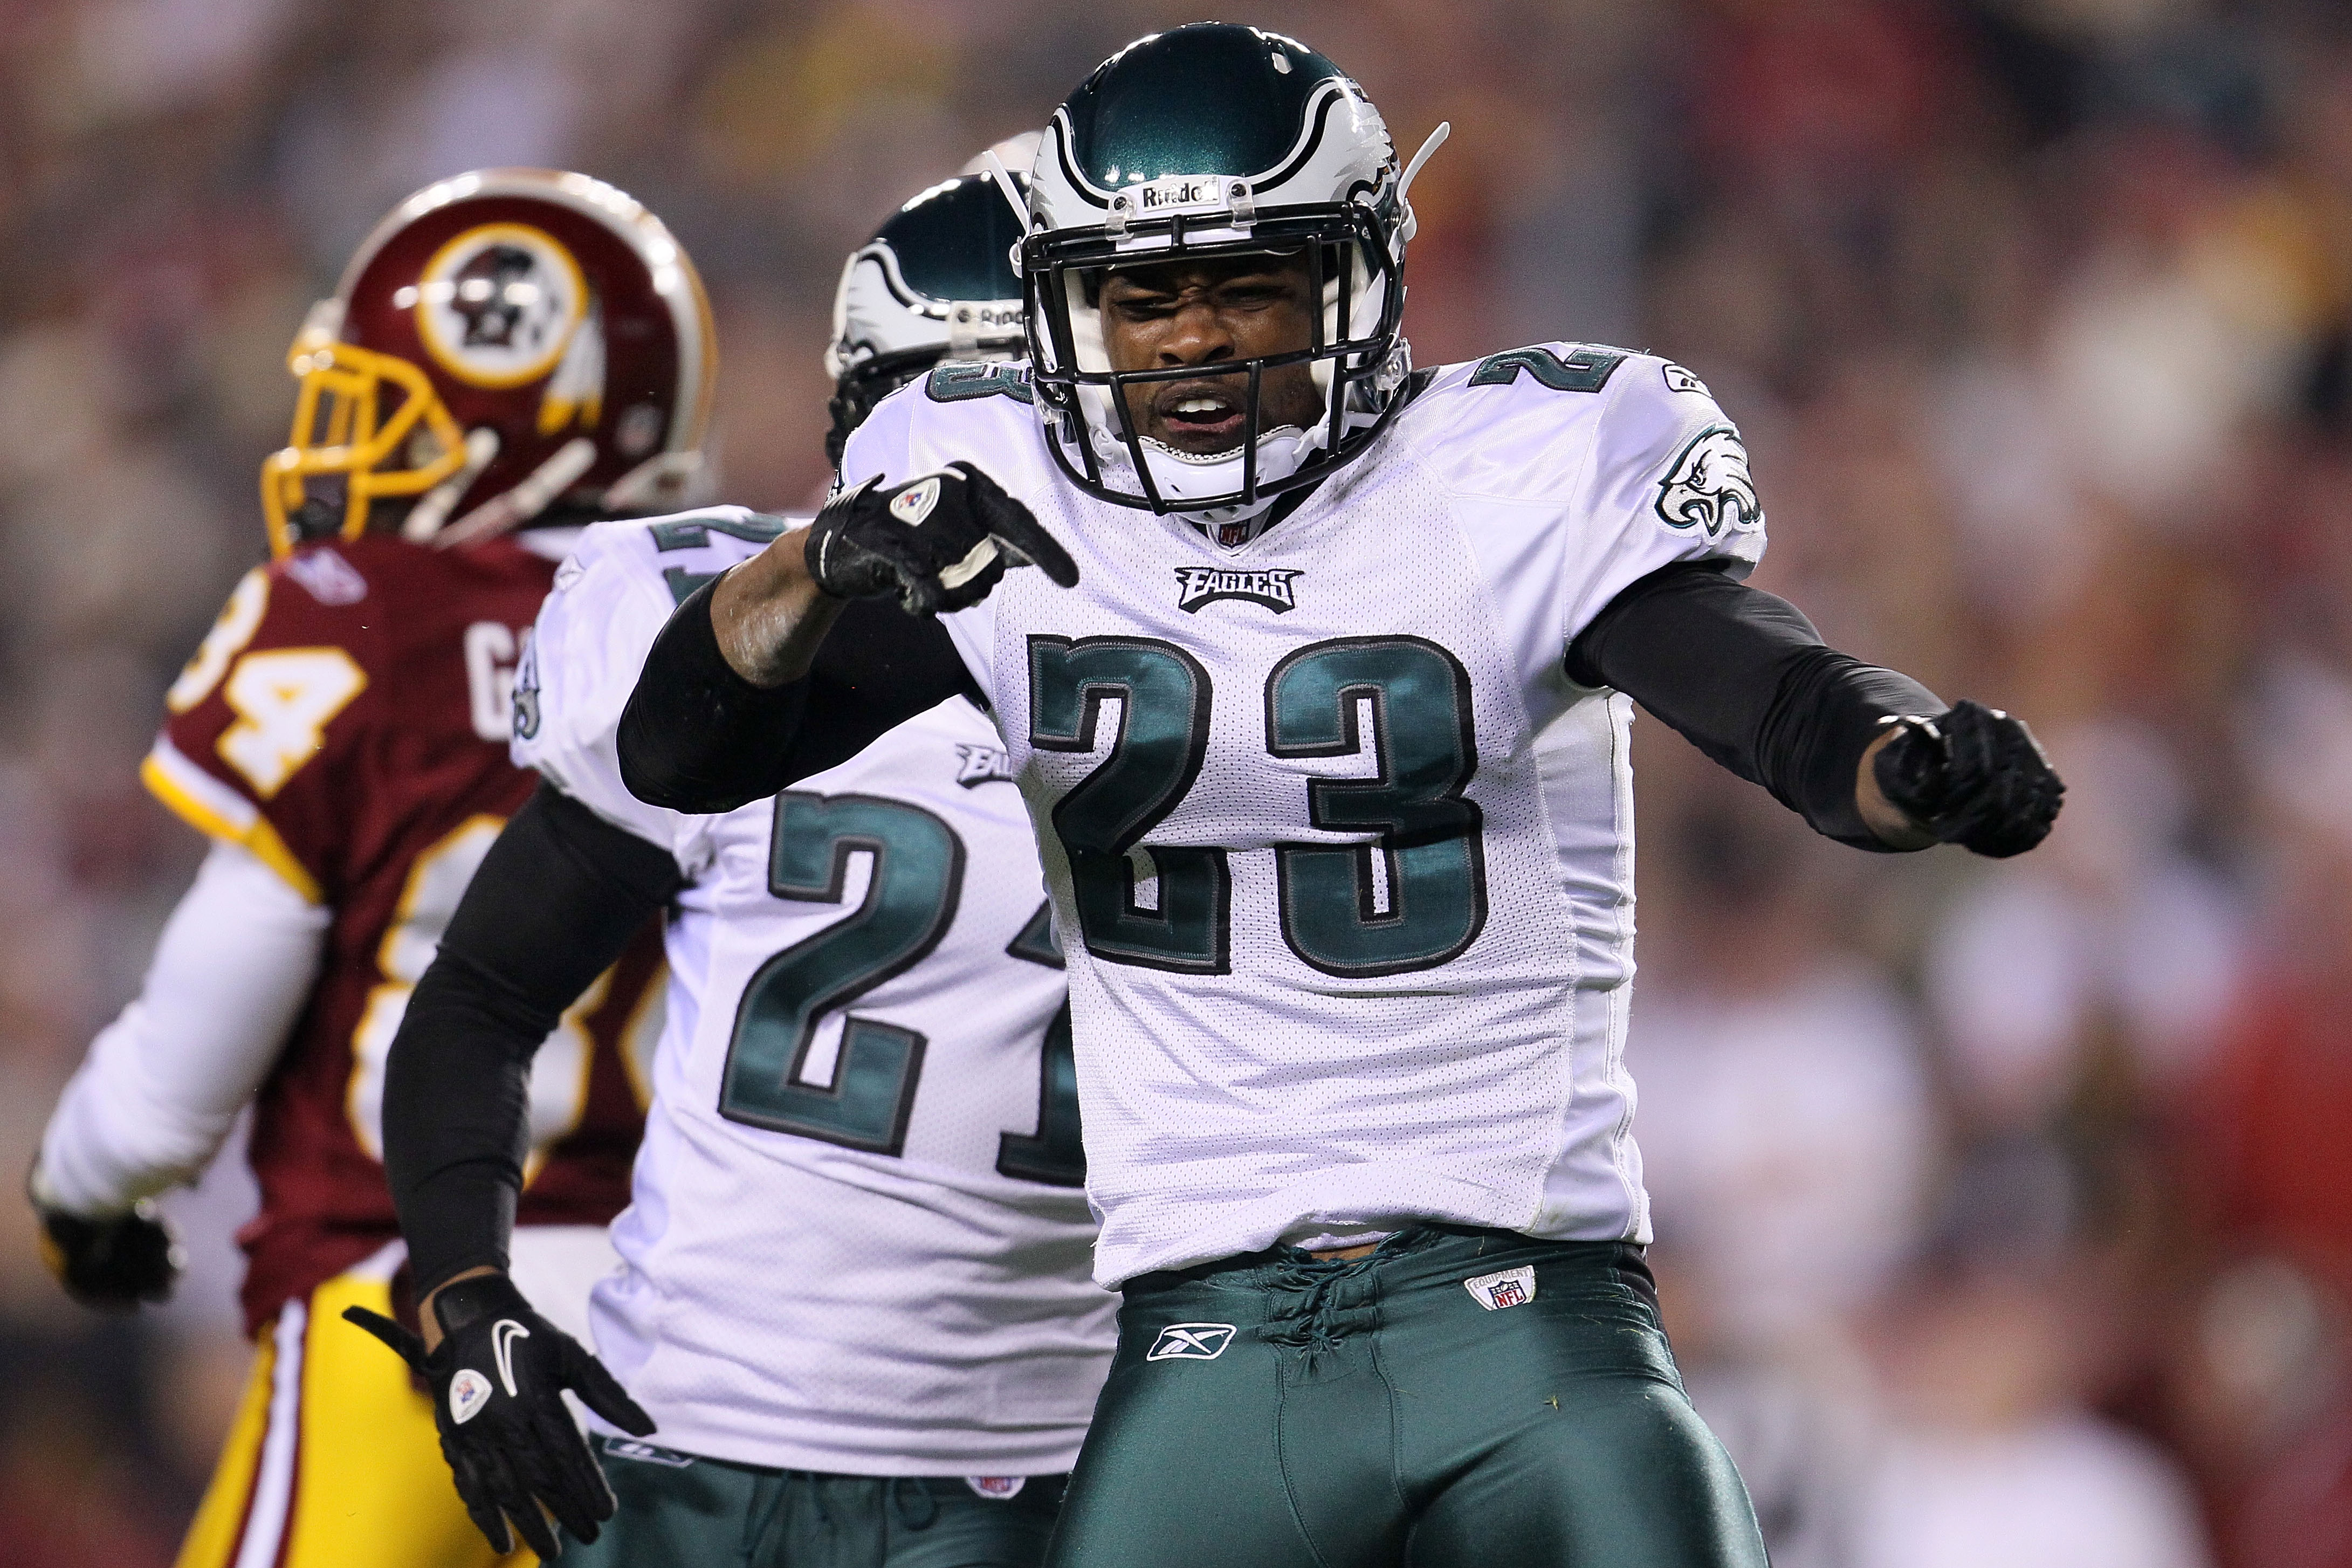 LANDOVER, MD - NOVEMBER 15: Dimitri Patterson #23 of the Philadelphia Eagles celebrates a tackle against  the Washington Redskins on November 15, 2010 at FedExField in Landover, Maryland.  (Photo by Chris McGrath/Getty Images)